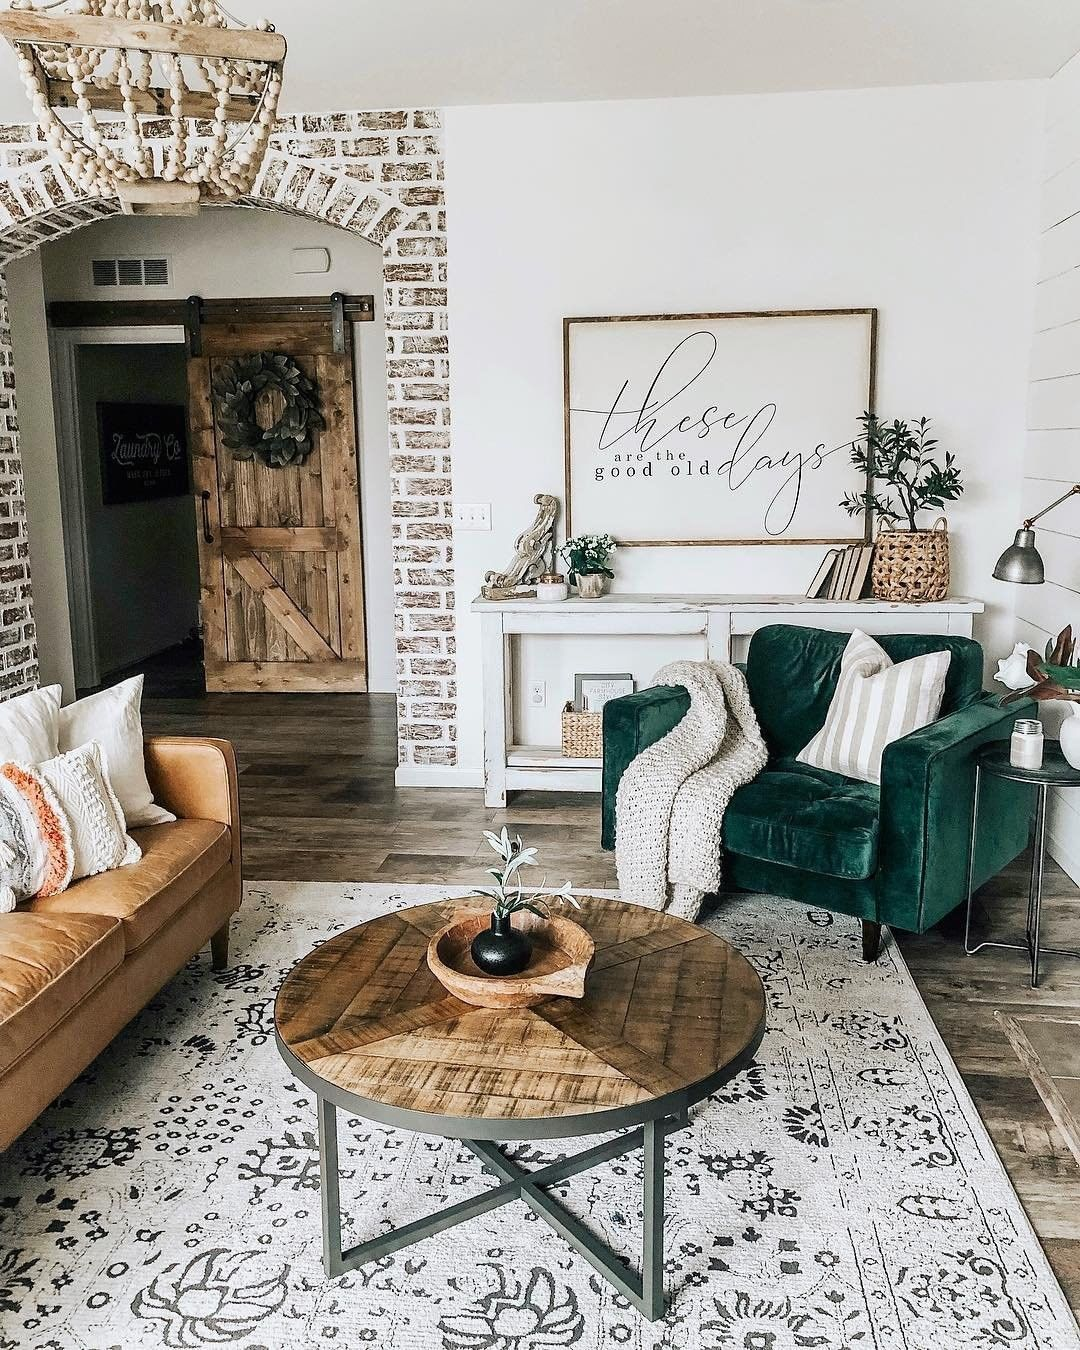 We Love A Good Statement Piece Houseon77th S Jewel Toned Chair Adds A Beautiful Pop Of Color To Budget Home Decorating Floor Seating Living Room Brick Decor